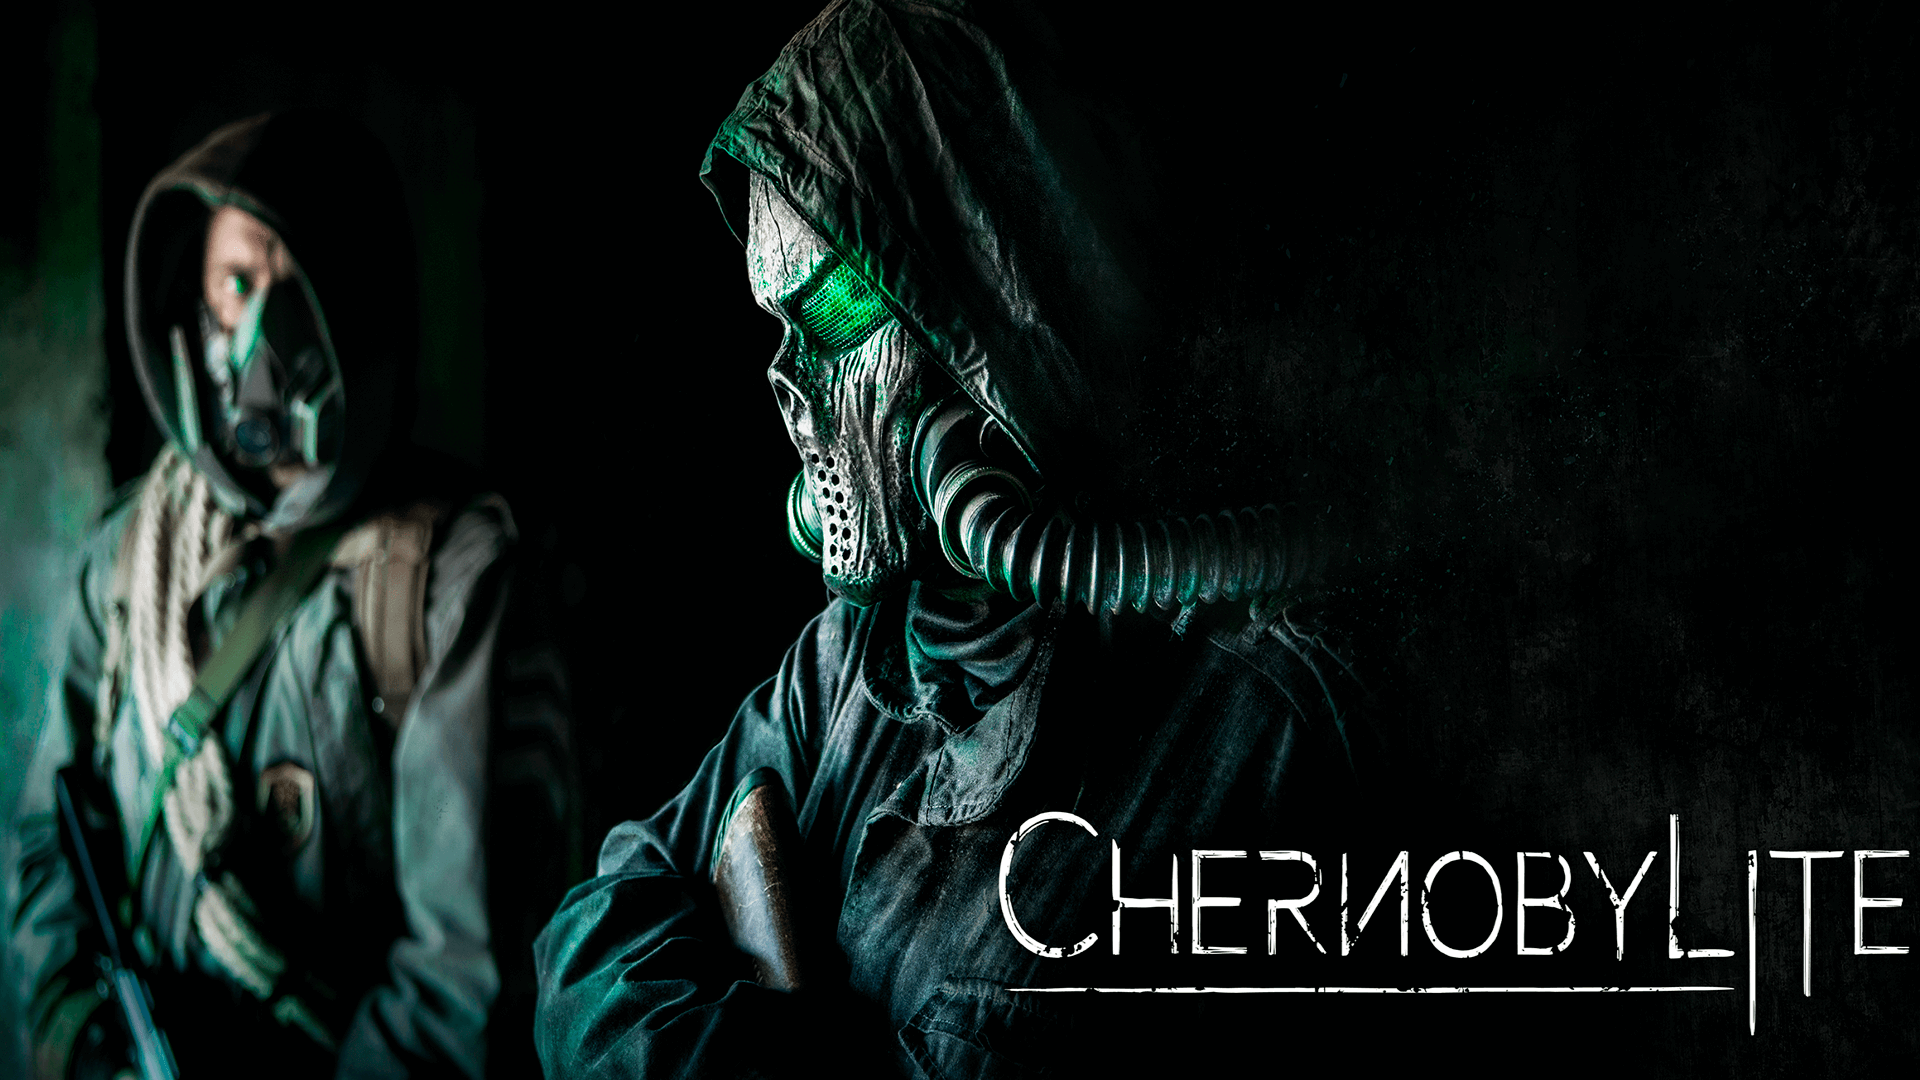 Chernobylite Comes to Consoles Next Year